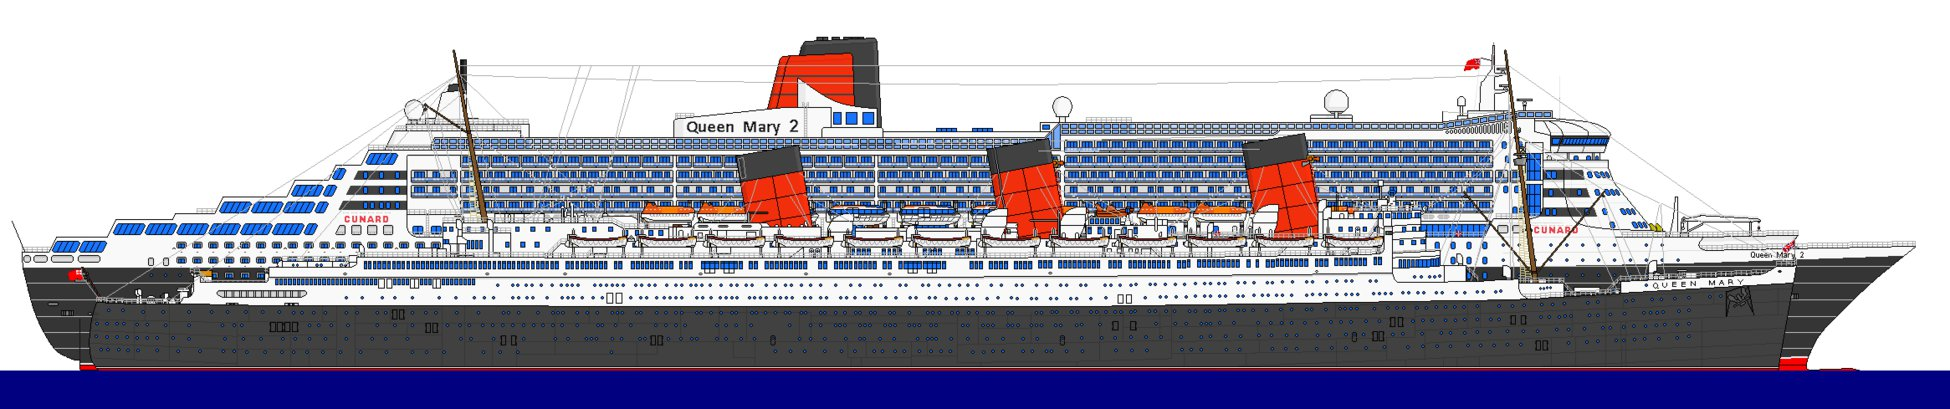 Size comparison of Queen Mary 2 and the original RMS Queen Mary.